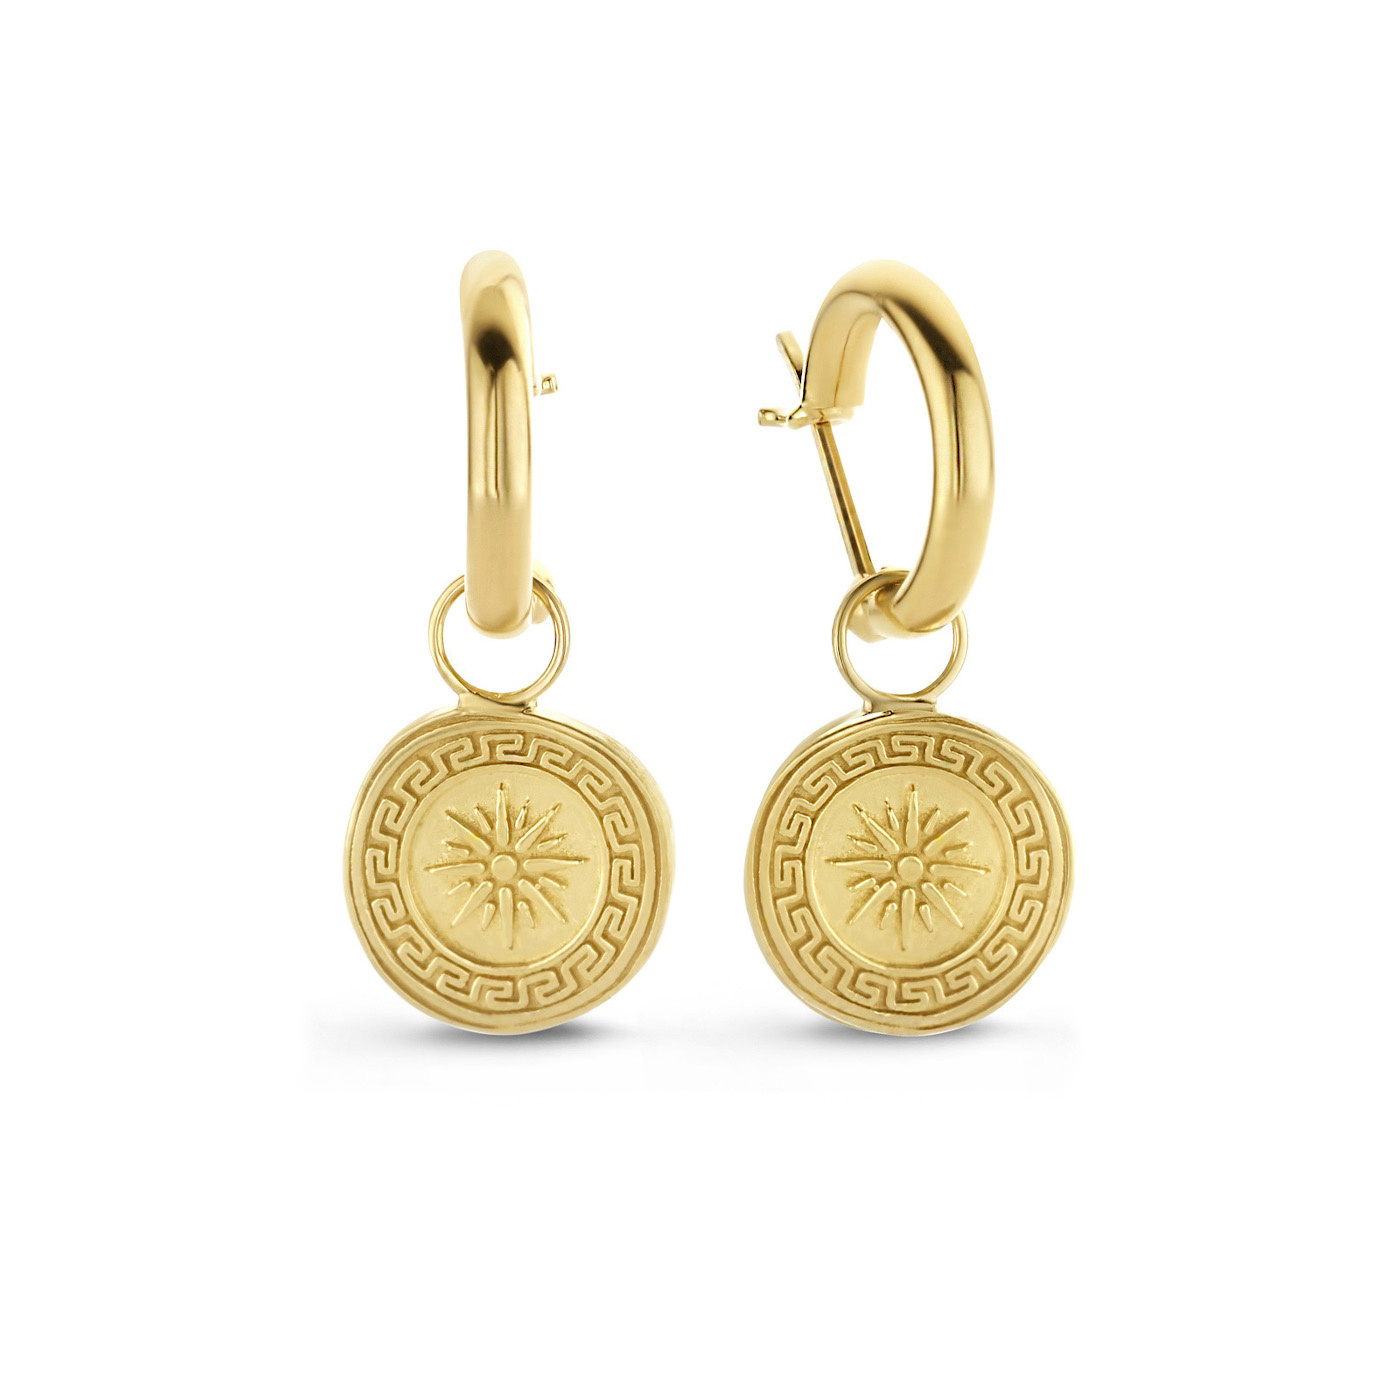 Violet Hamden Athens 925 sterling silver gold colored earrings